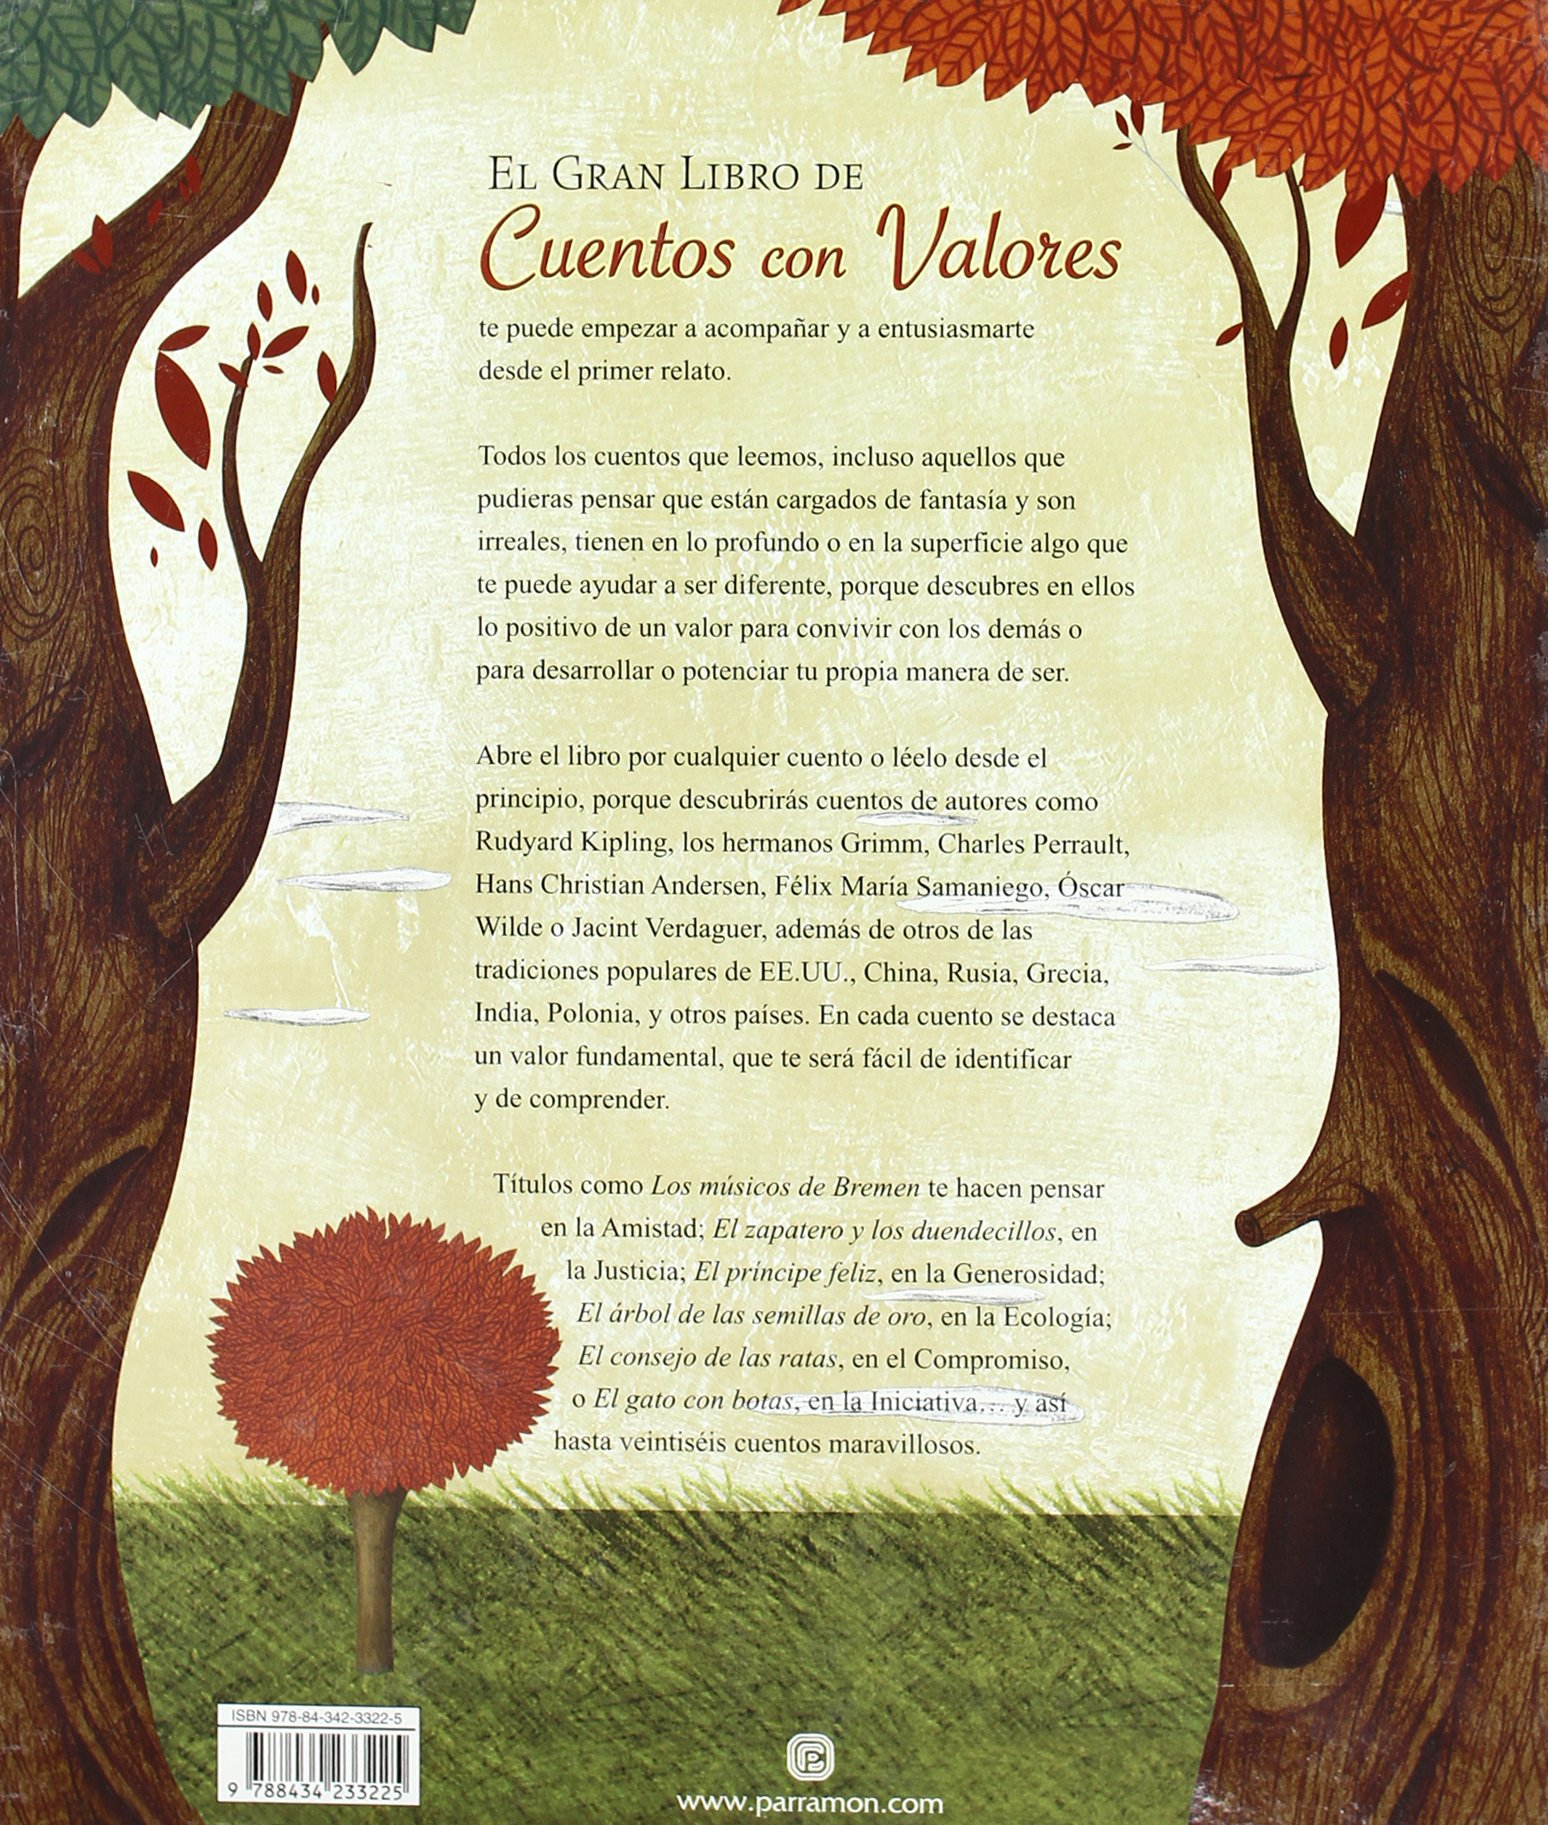 EL GRAN LIBRO DE LOS CUENTOS CON VALORES (Spanish Edition): Parramon: 9788434233225: Amazon.com: Books